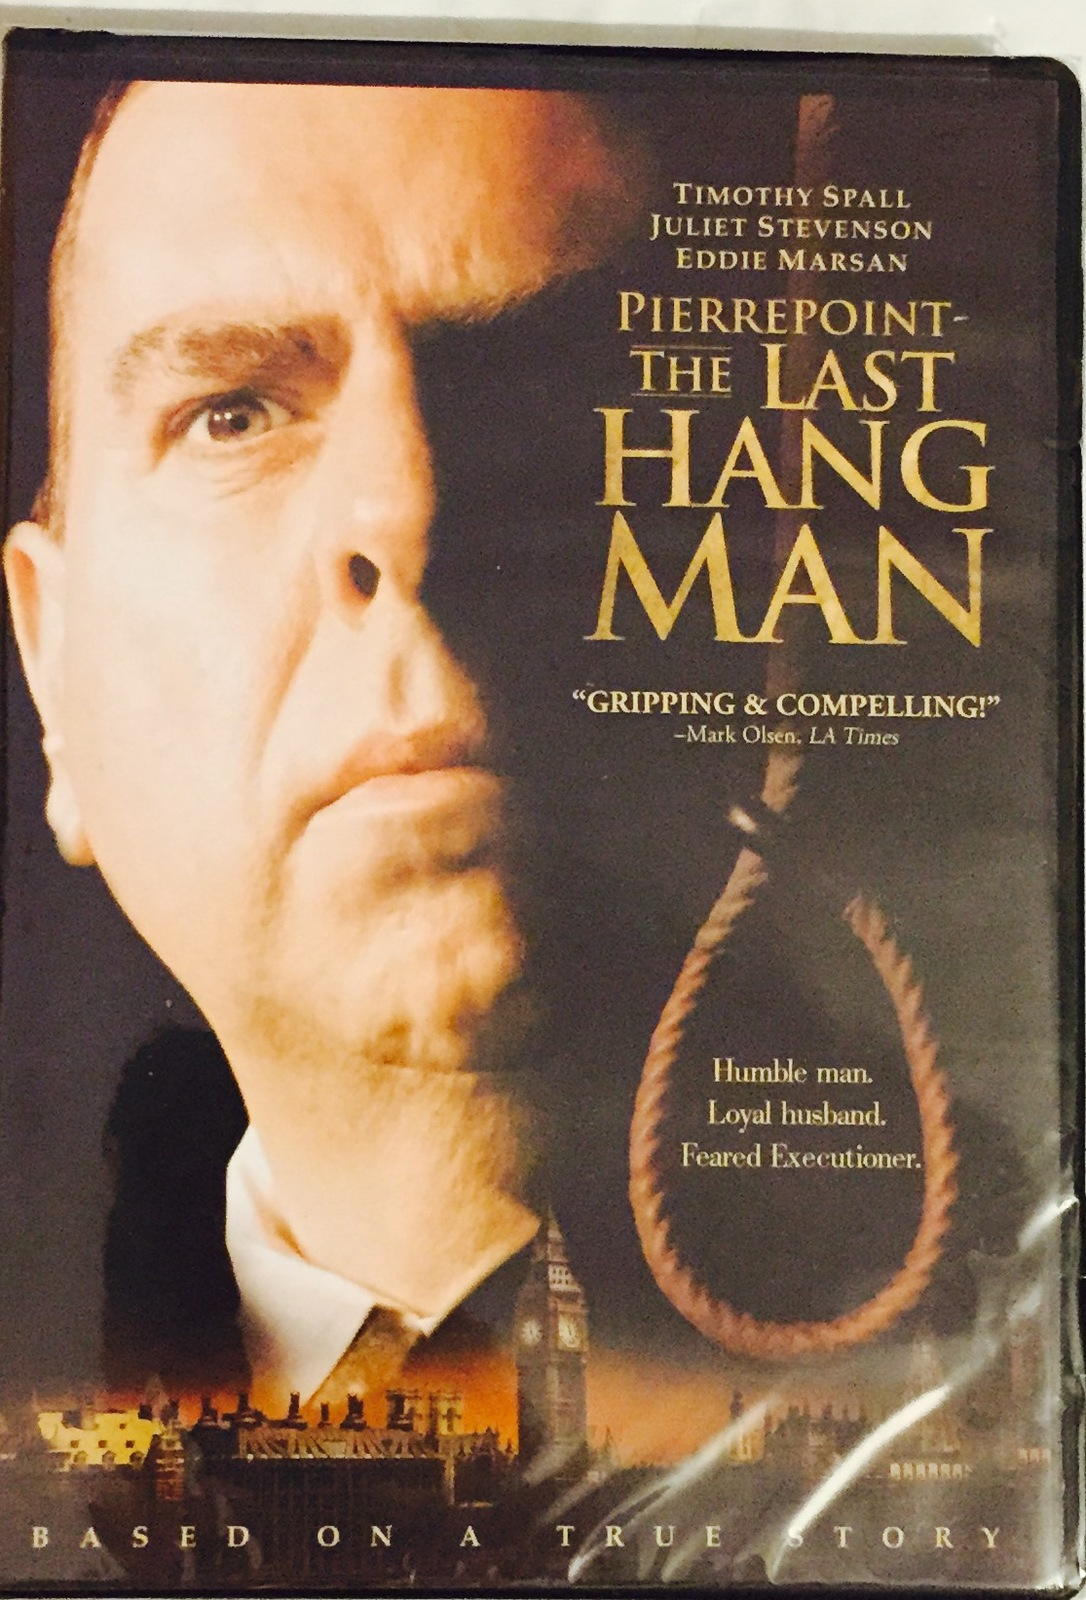 Pierrepoint: The Last Hangman [DVD ~ Brand New] Based on a True Story